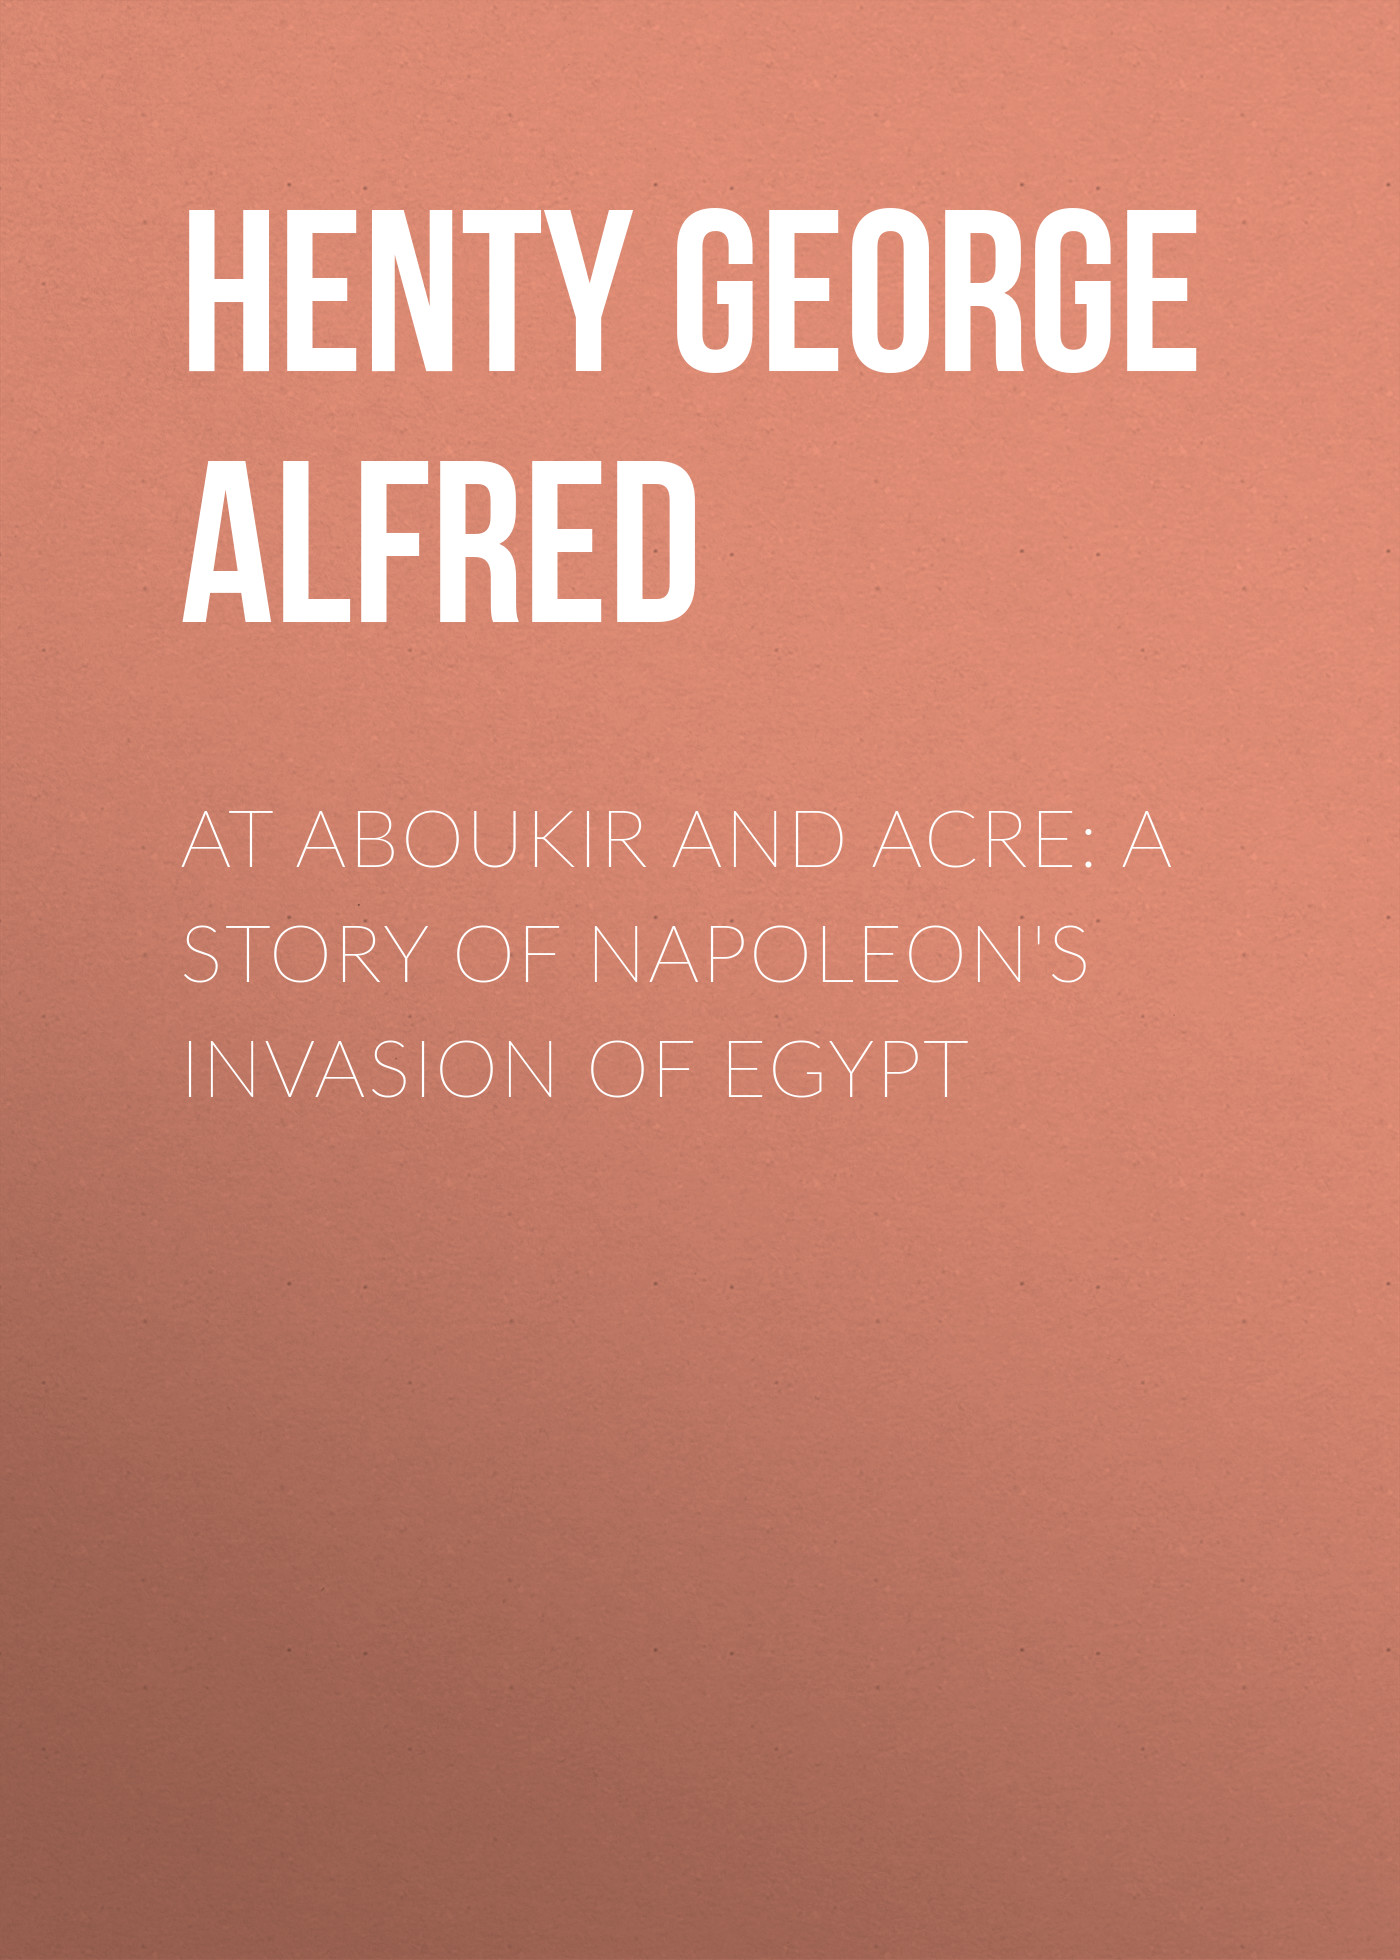 Henty George Alfred At Aboukir and Acre: A Story of Napoleon's Invasion of Egypt